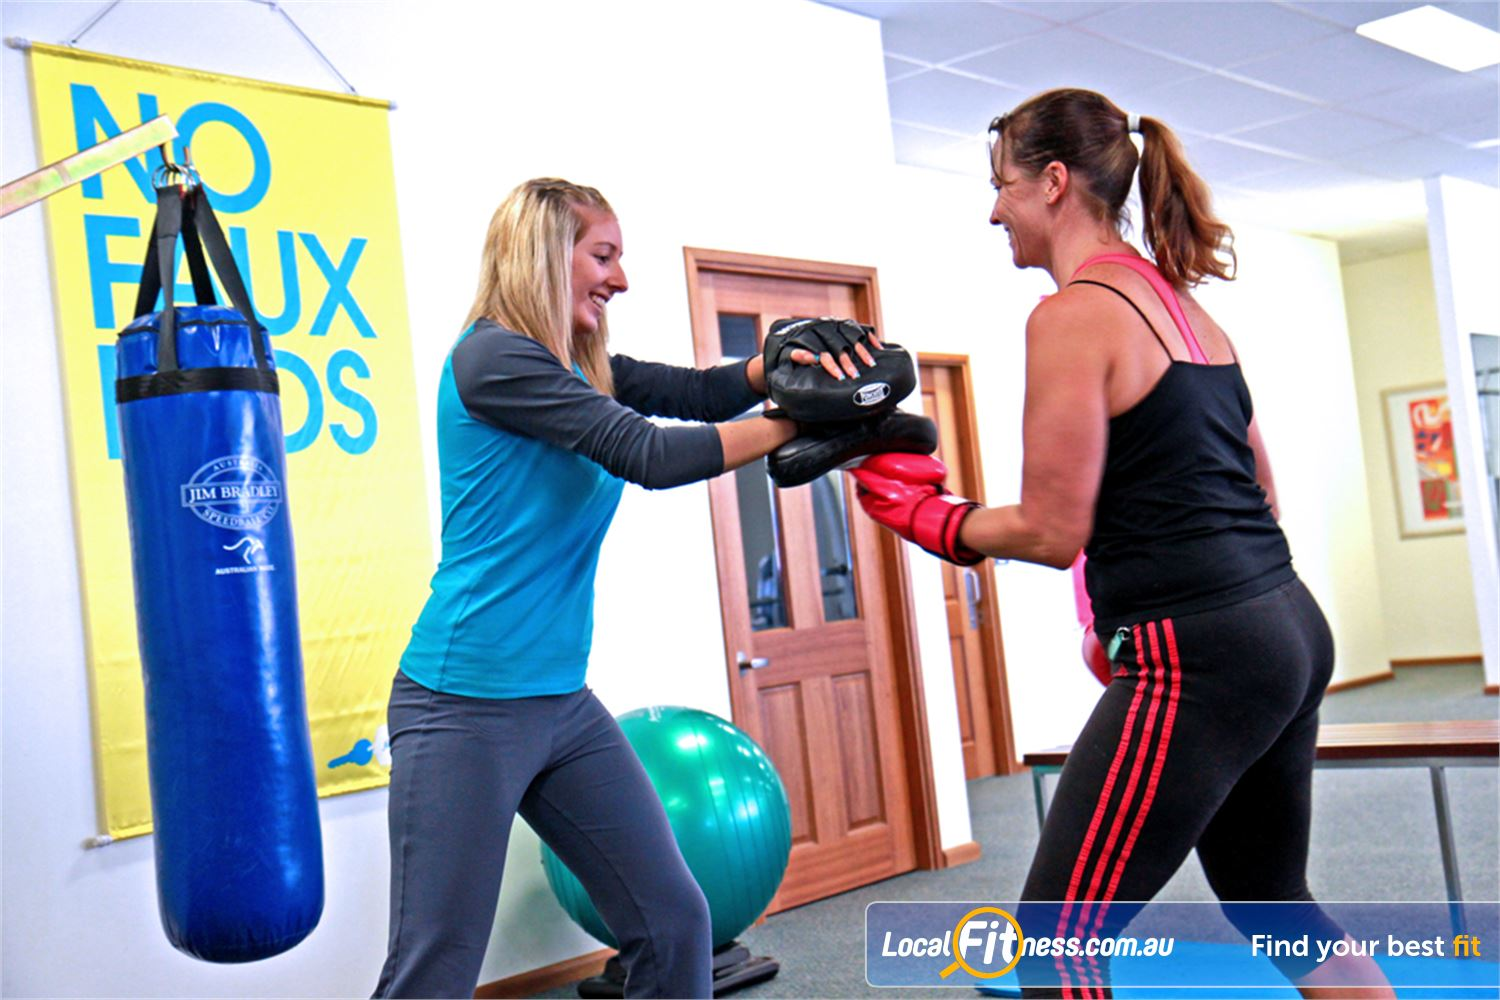 Fernwood Fitness Near Rochedale South Lose weight fast with our energetic cardio boxing workouts.